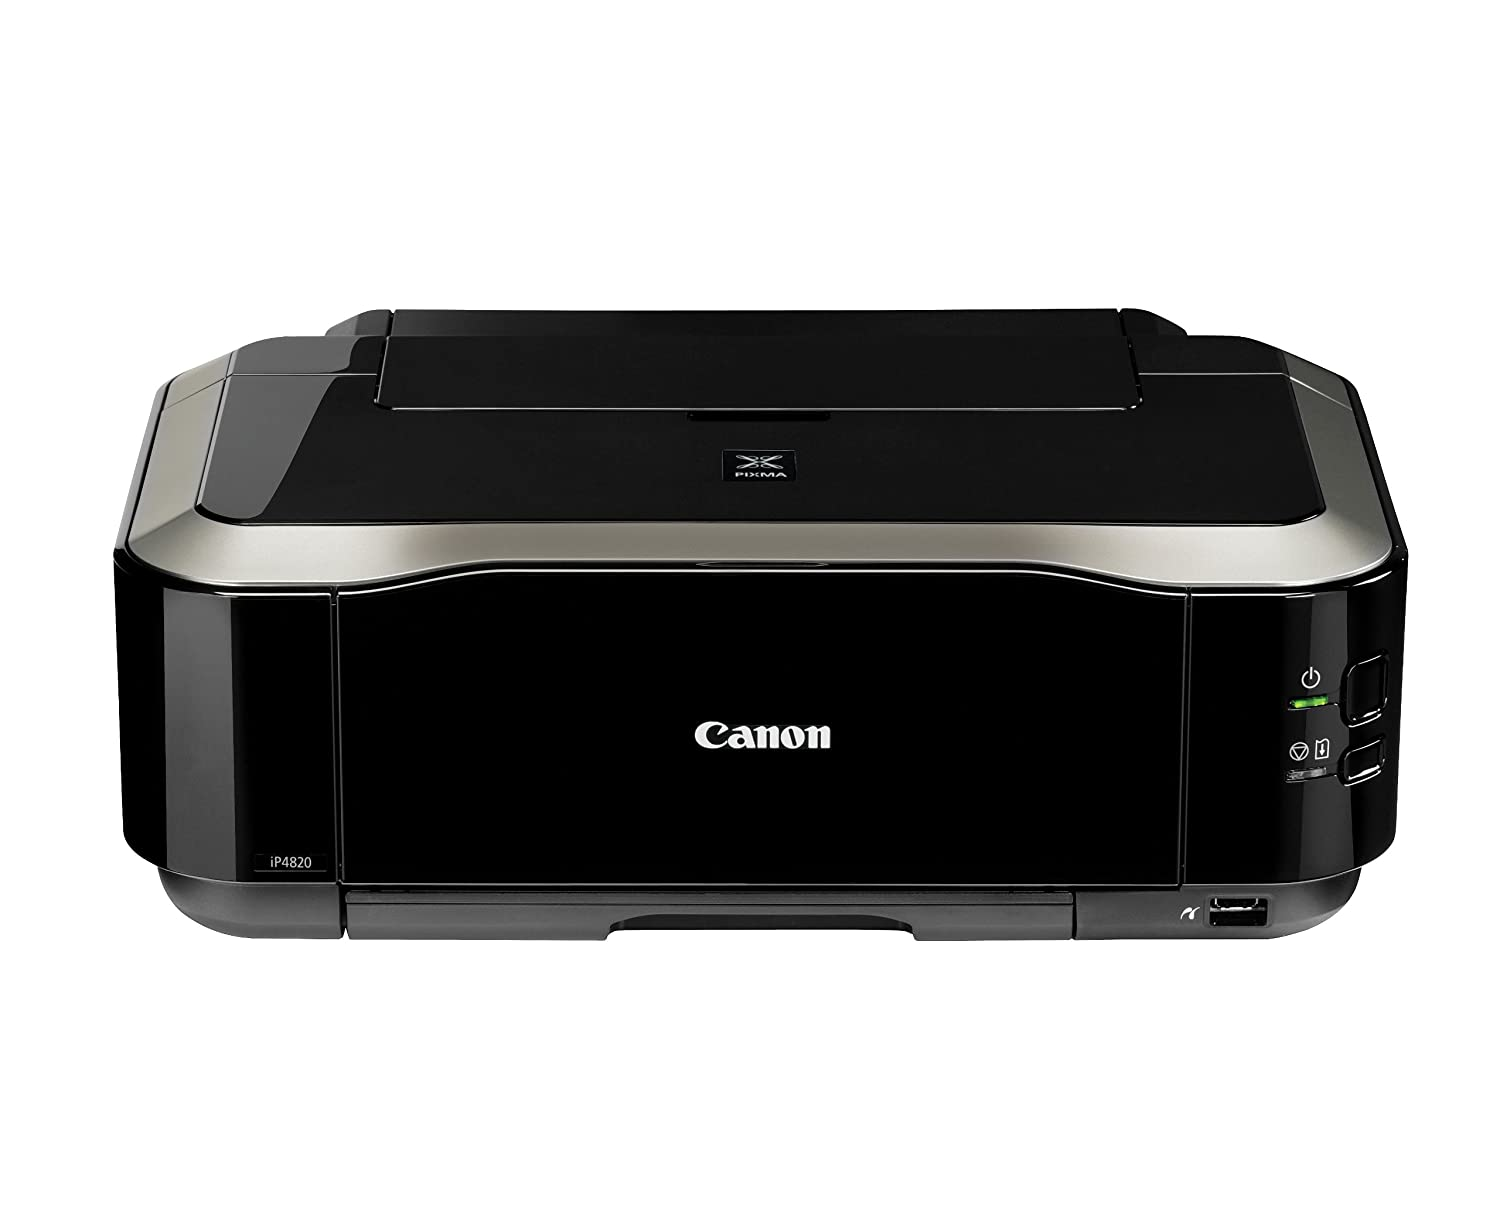 Amazon.com: Canon PIXMA iP4820 Premium Inkjet Photo Printer (4496B002):  Electronics